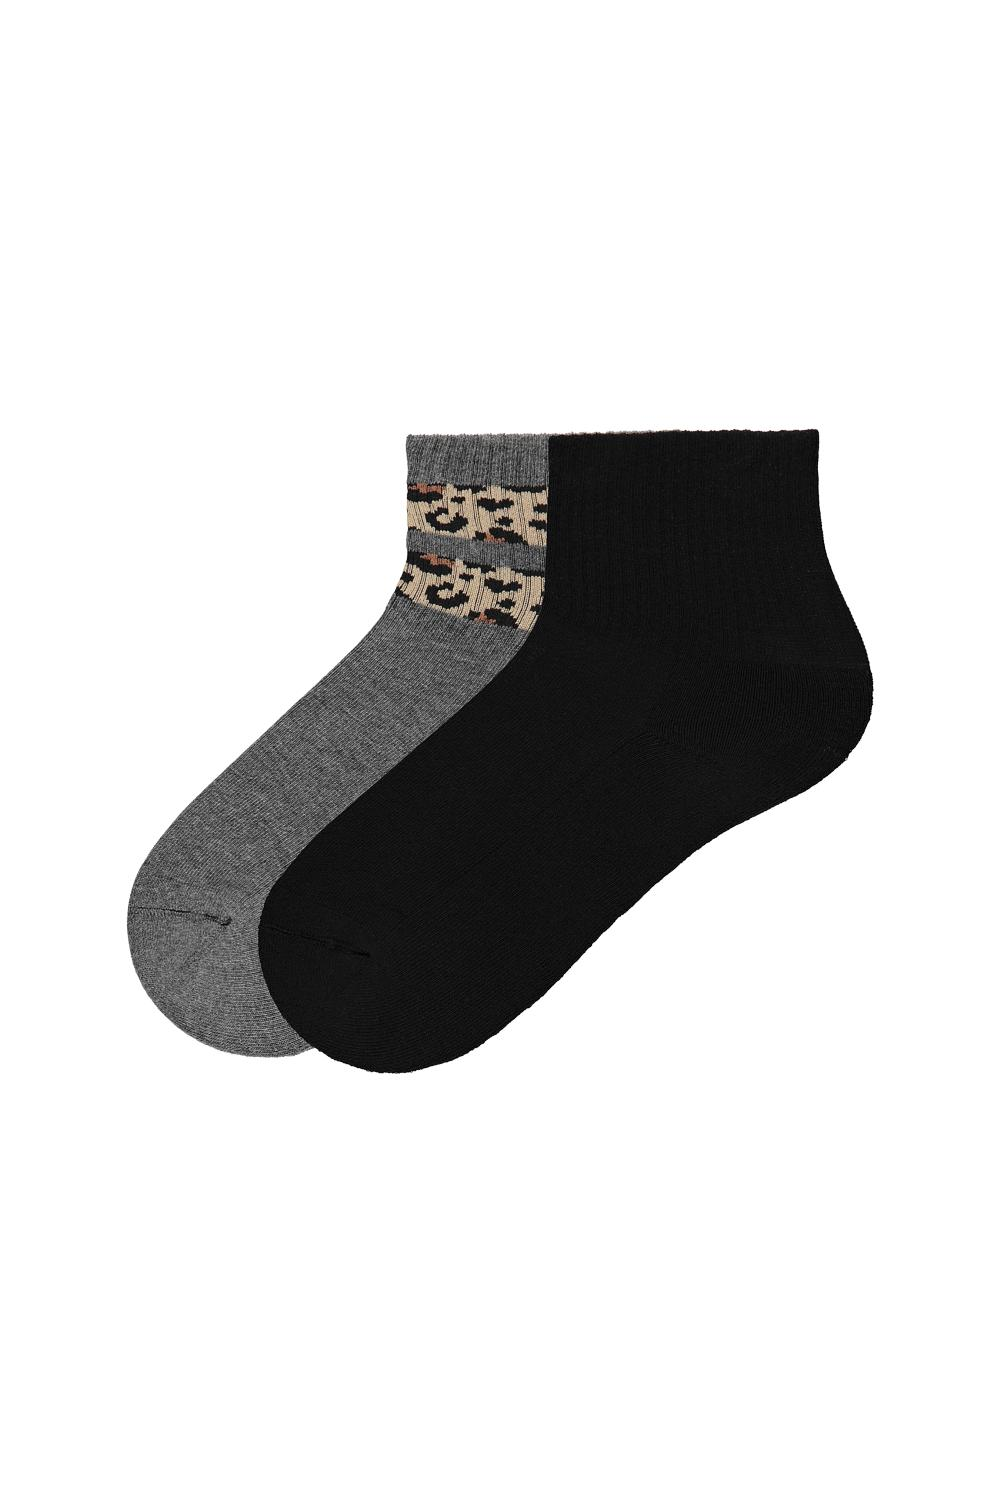 2 x Cotton Fantasy Print Sport Socks